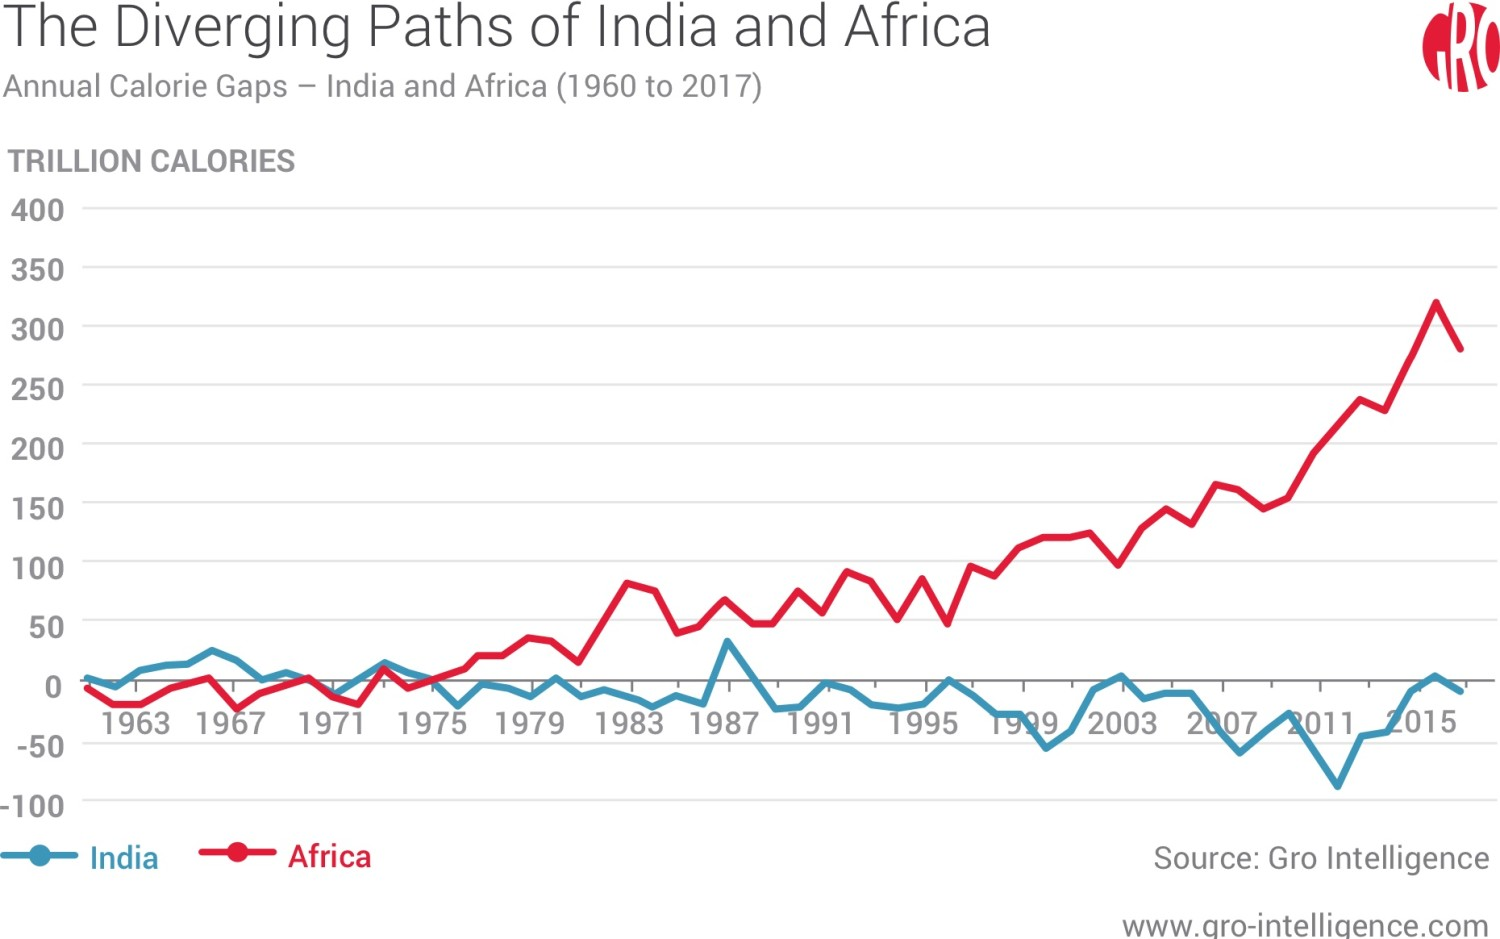 The Diverging Paths of India and Africa